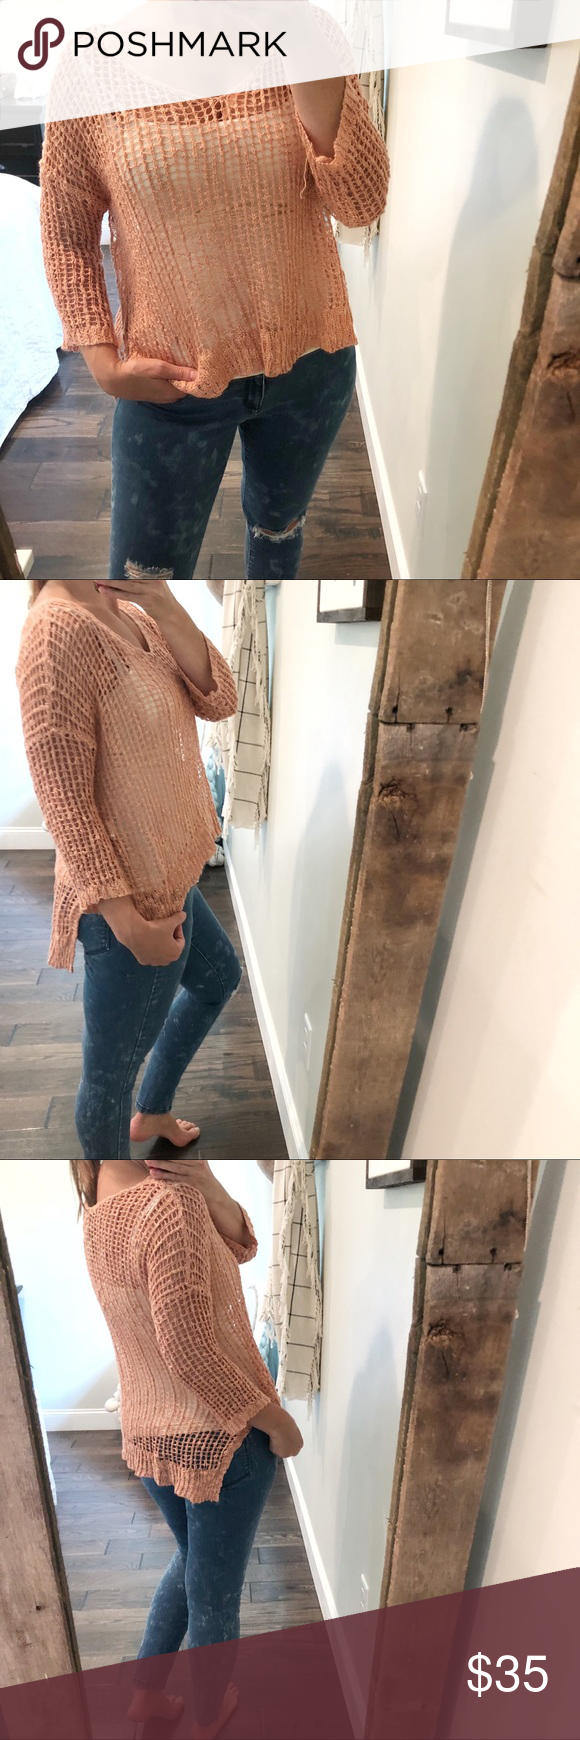 Paradise oversized dusty rose open knit sweater Paradise oversized dusty rose open knit sweater EUC Pet free smoke free organic home  5 Star Rated Seller Same day or at t...